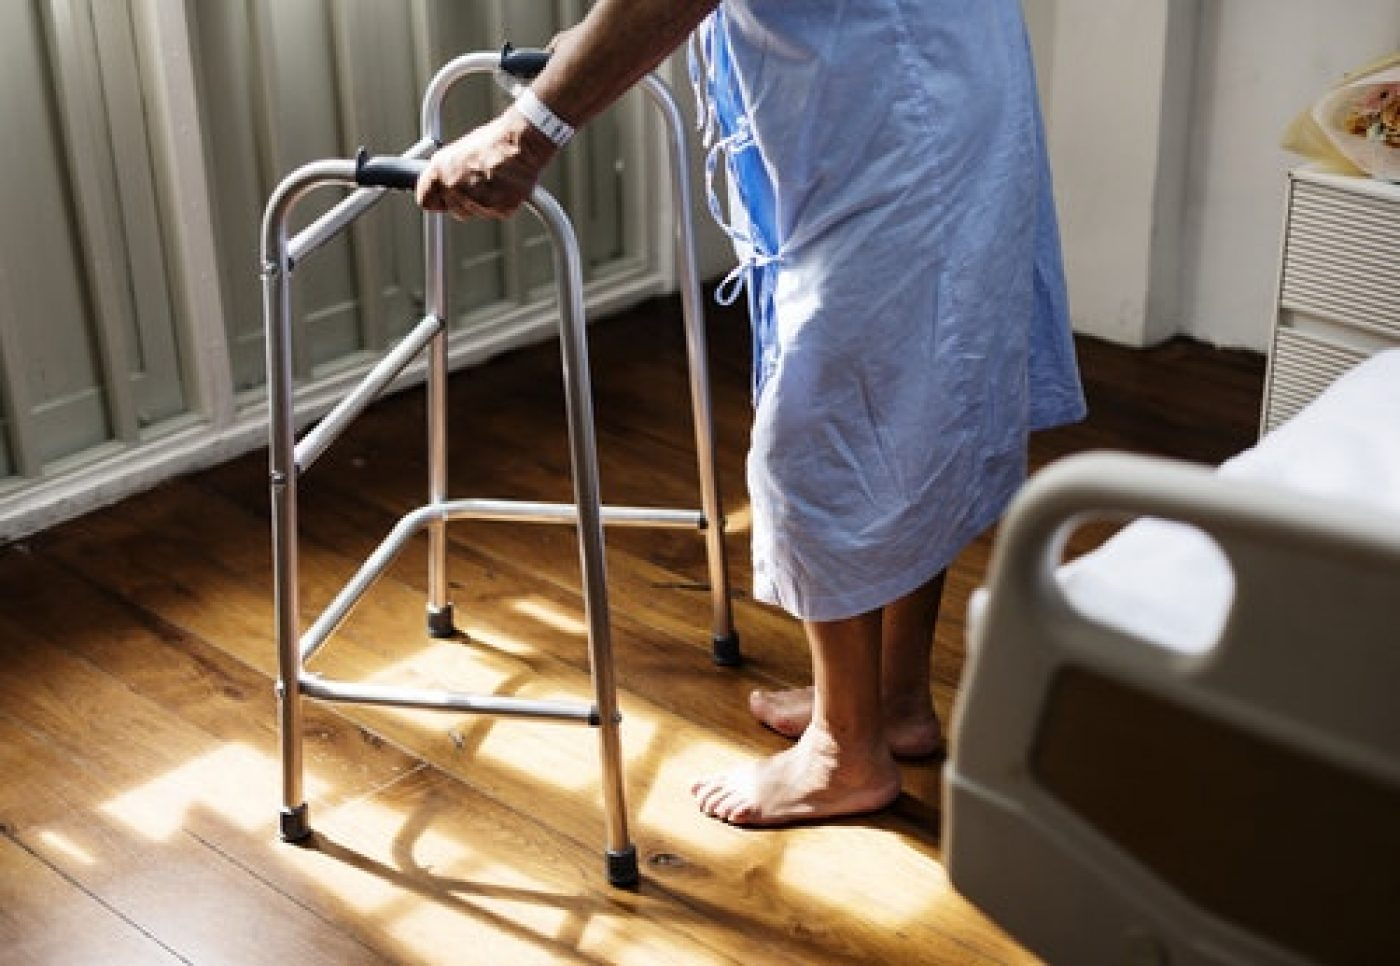 Patient neglect in nursing home